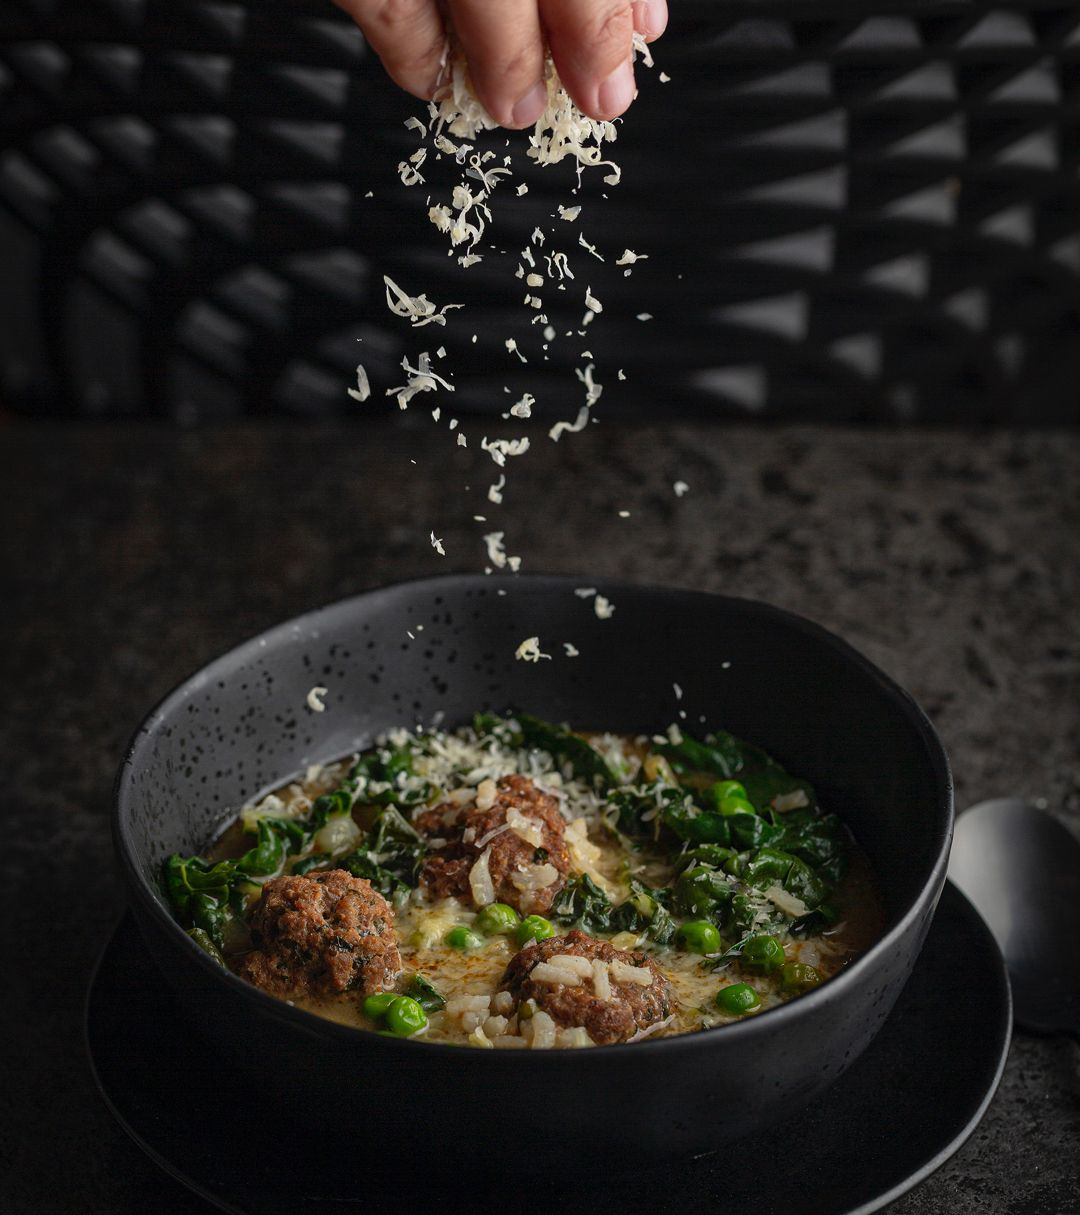 :: NEW RECIPE -  ITALIAN MEATBALLS WITH RICE & BROTH ::  Our recipe for September features both our Vegetable stock and Broth. It's earthy, hearty, full of nutrients and greens. The recipe is in our recipe section on our website. Enjoy & make sure you tag us in your creations.  - - - - - - - - - - - - - - - - - -  Pic @emma_jane_sheldrake  _______________________________________________________ #broth